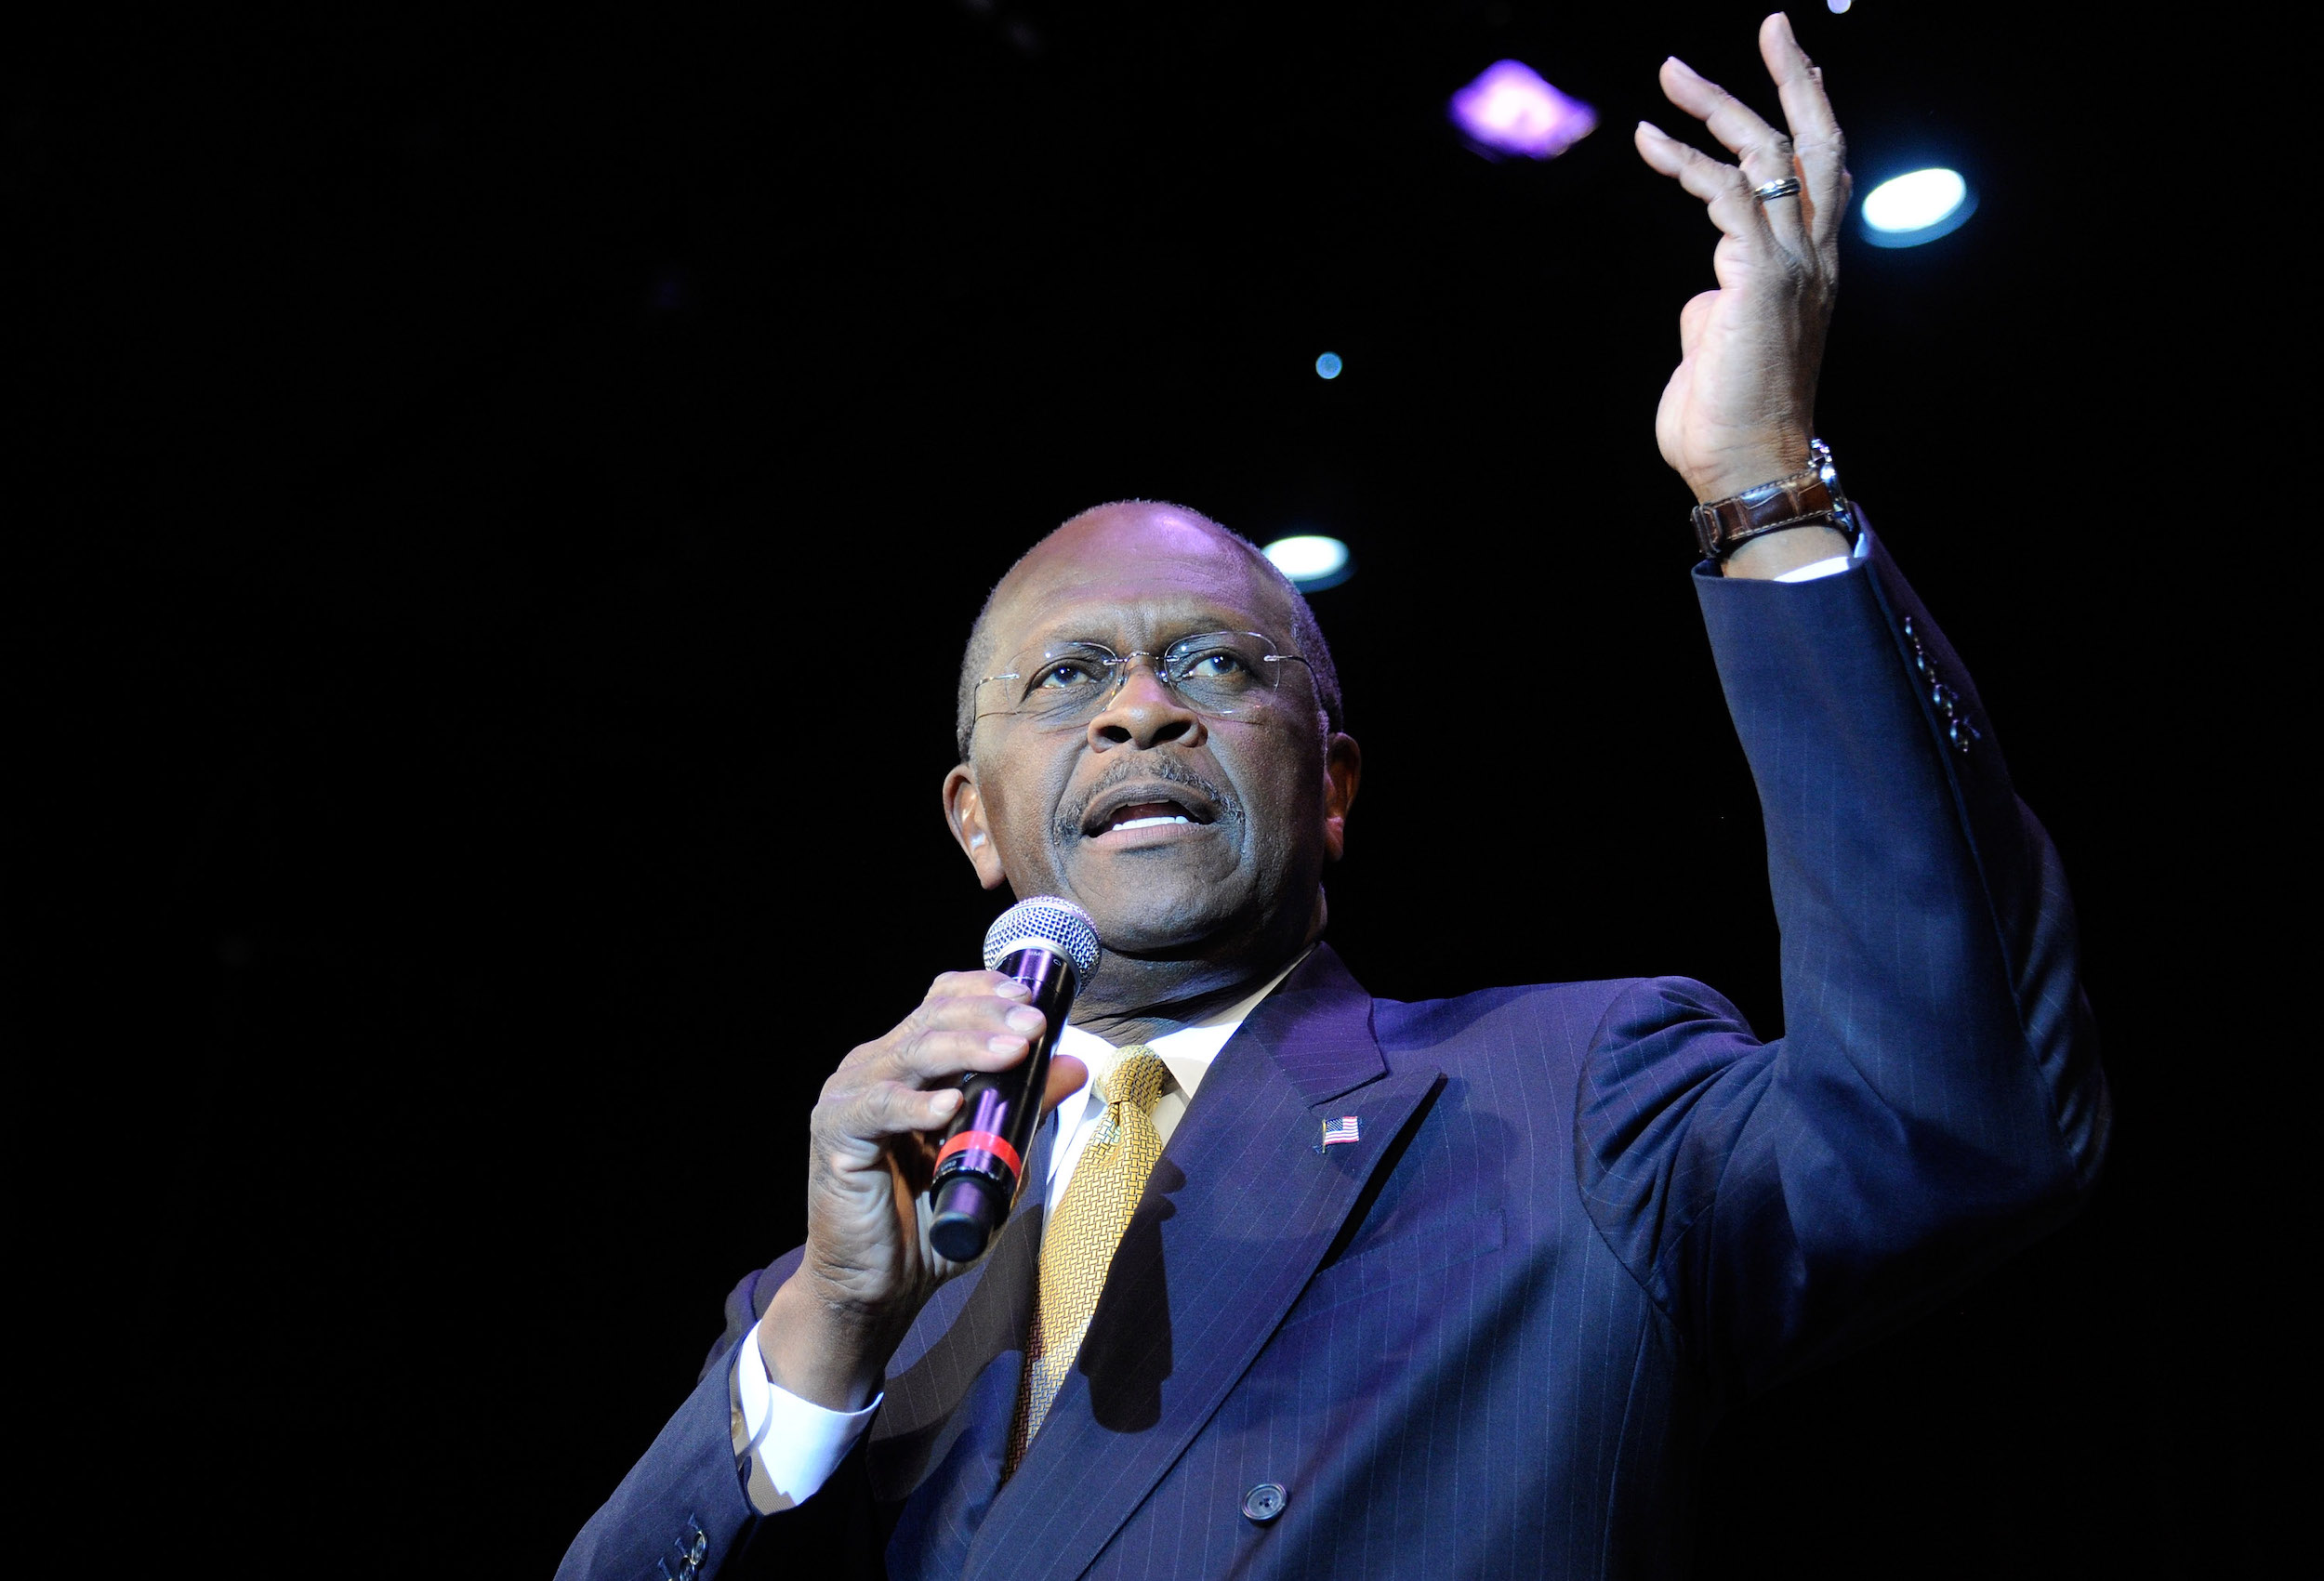 Former CEO of Godfather's Pizza and Republican presidential hopeful Herman Cain speaks at the Western Republican Leadership Conference at The Venetian October 19, 2011 in Las Vegas, Nevada.